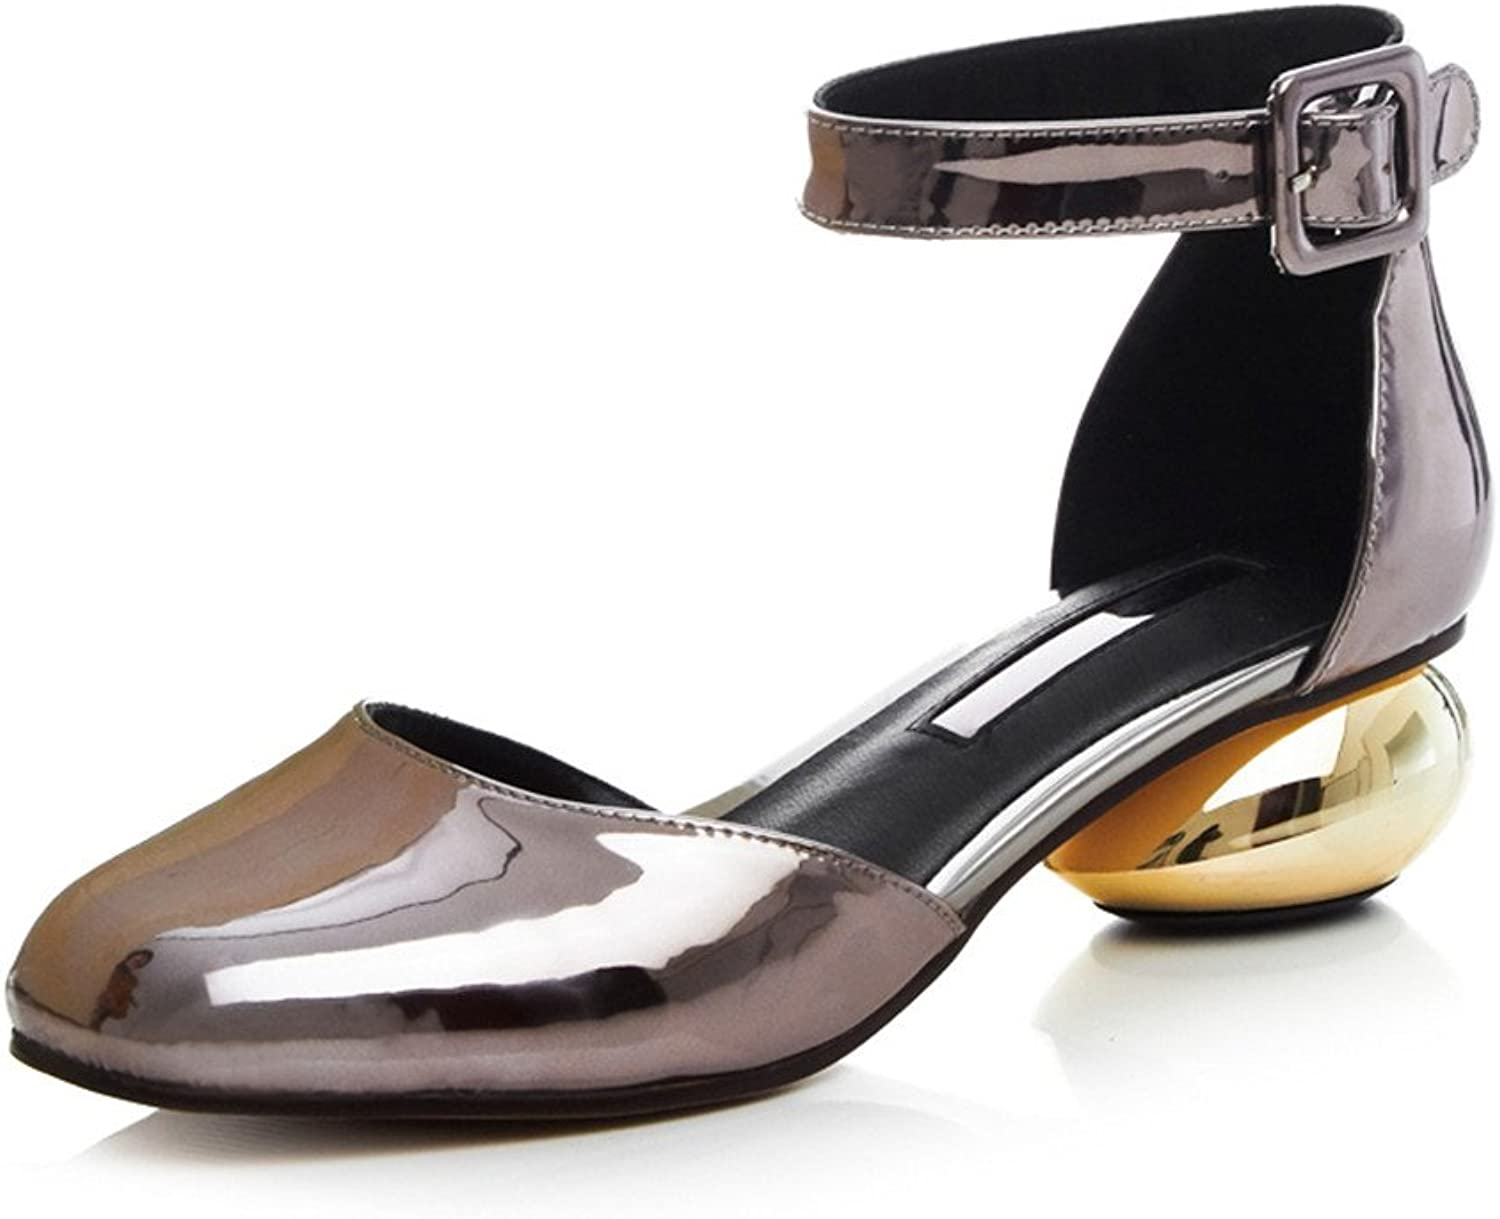 MINIVOG Women's French Heel Ankle Strap Square Sandal shoes